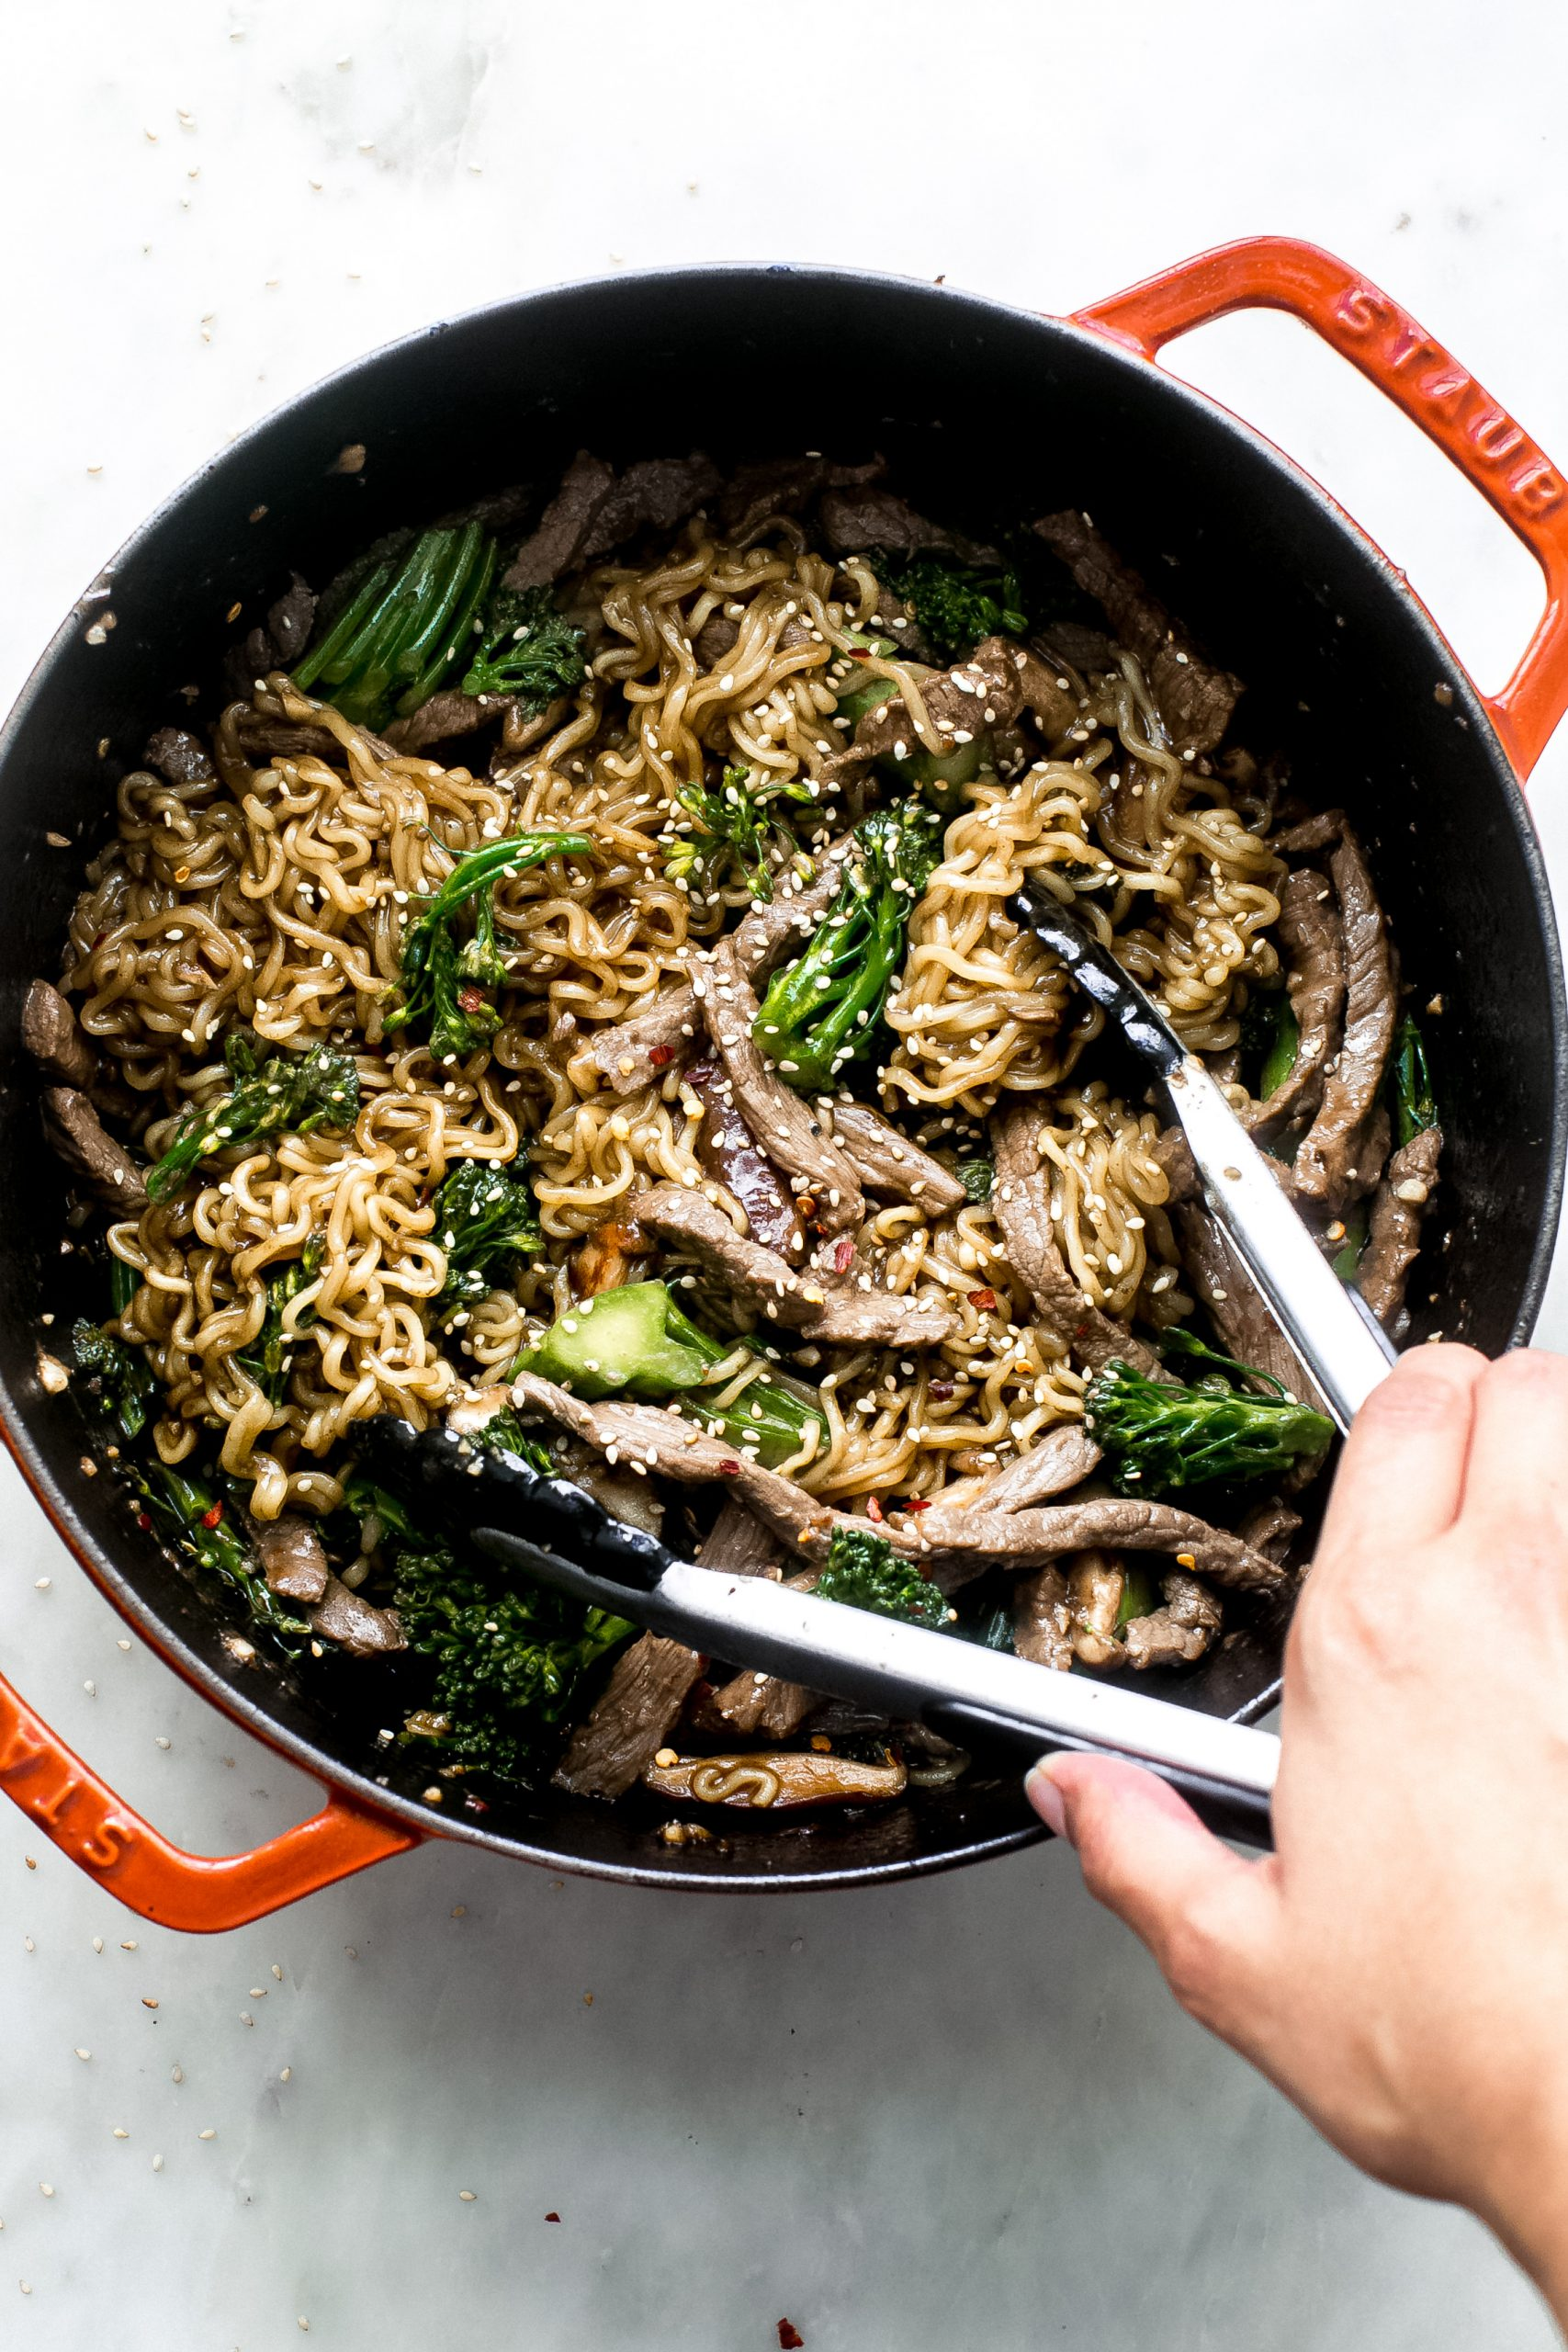 broccoli beef ramen being lifted with tongs from cast iron pot